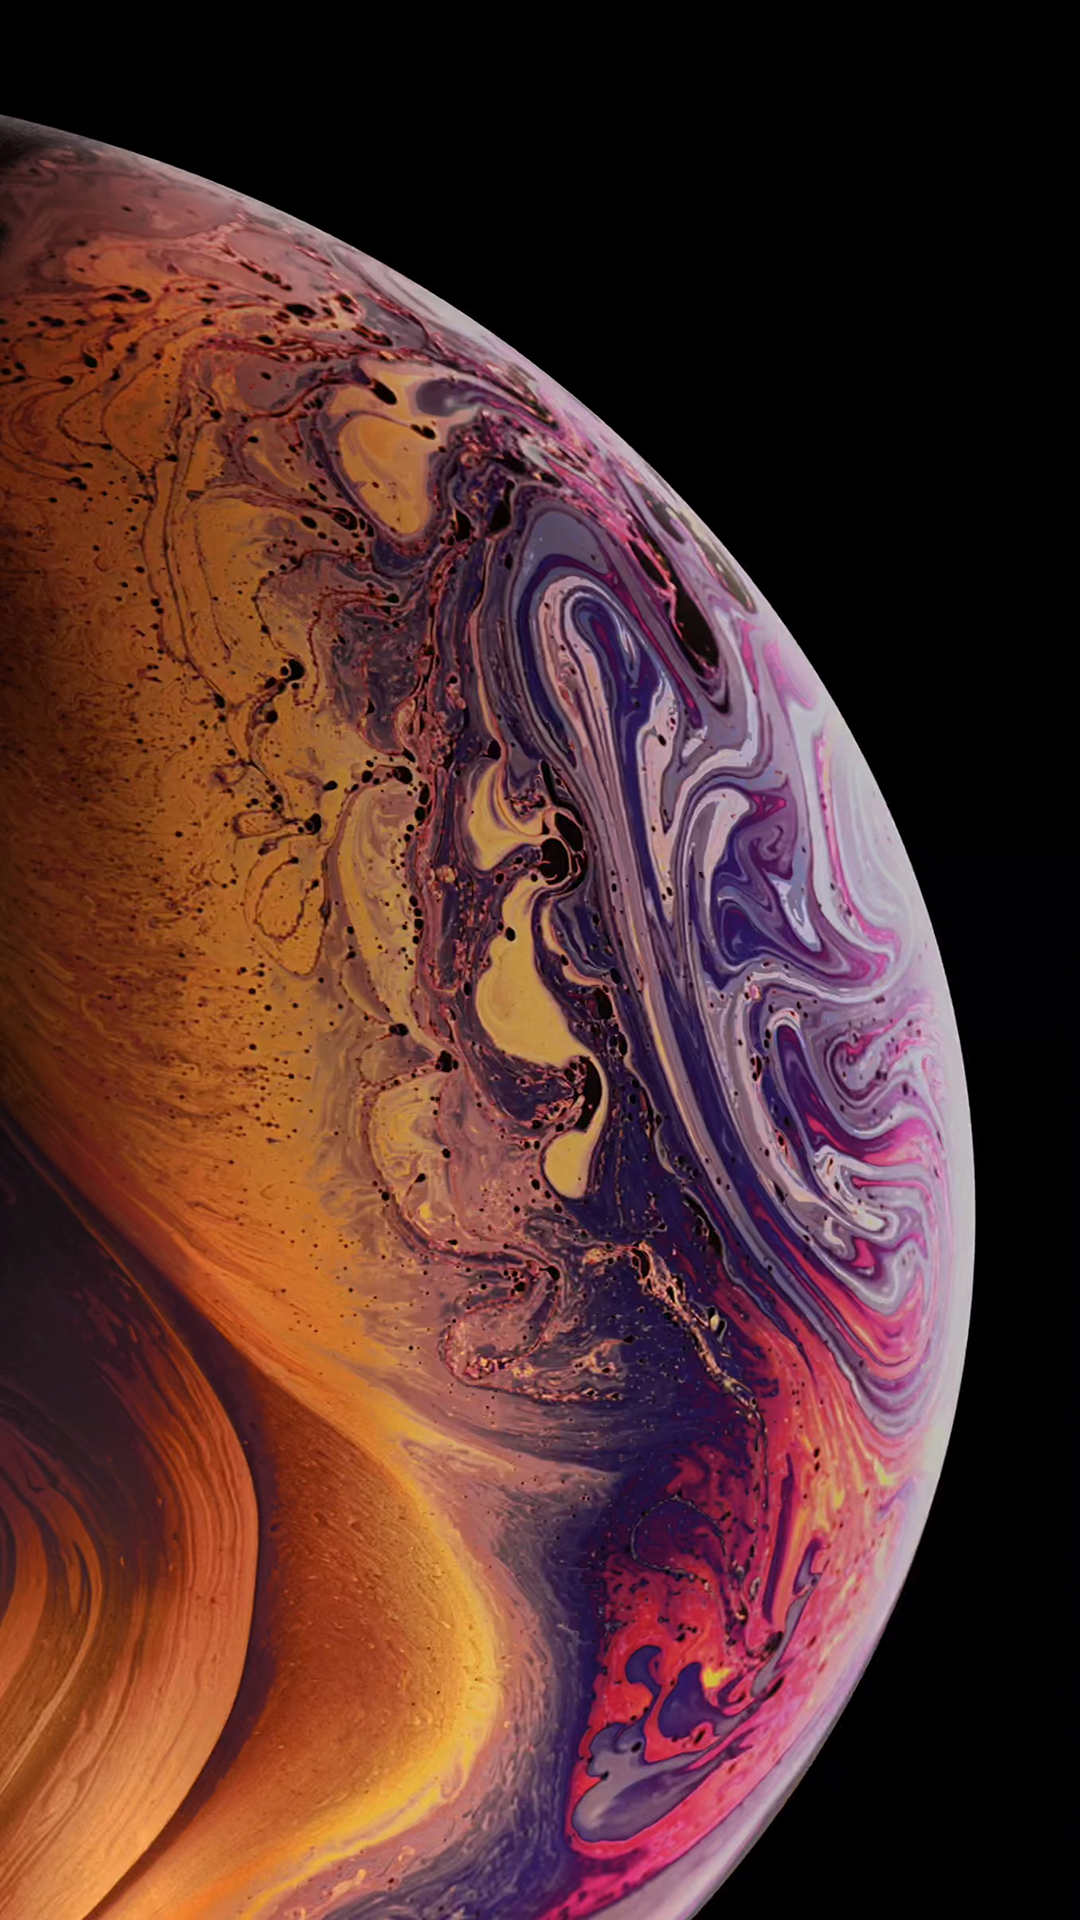 Download Iphone Xs Wallpapers Right Now From Here